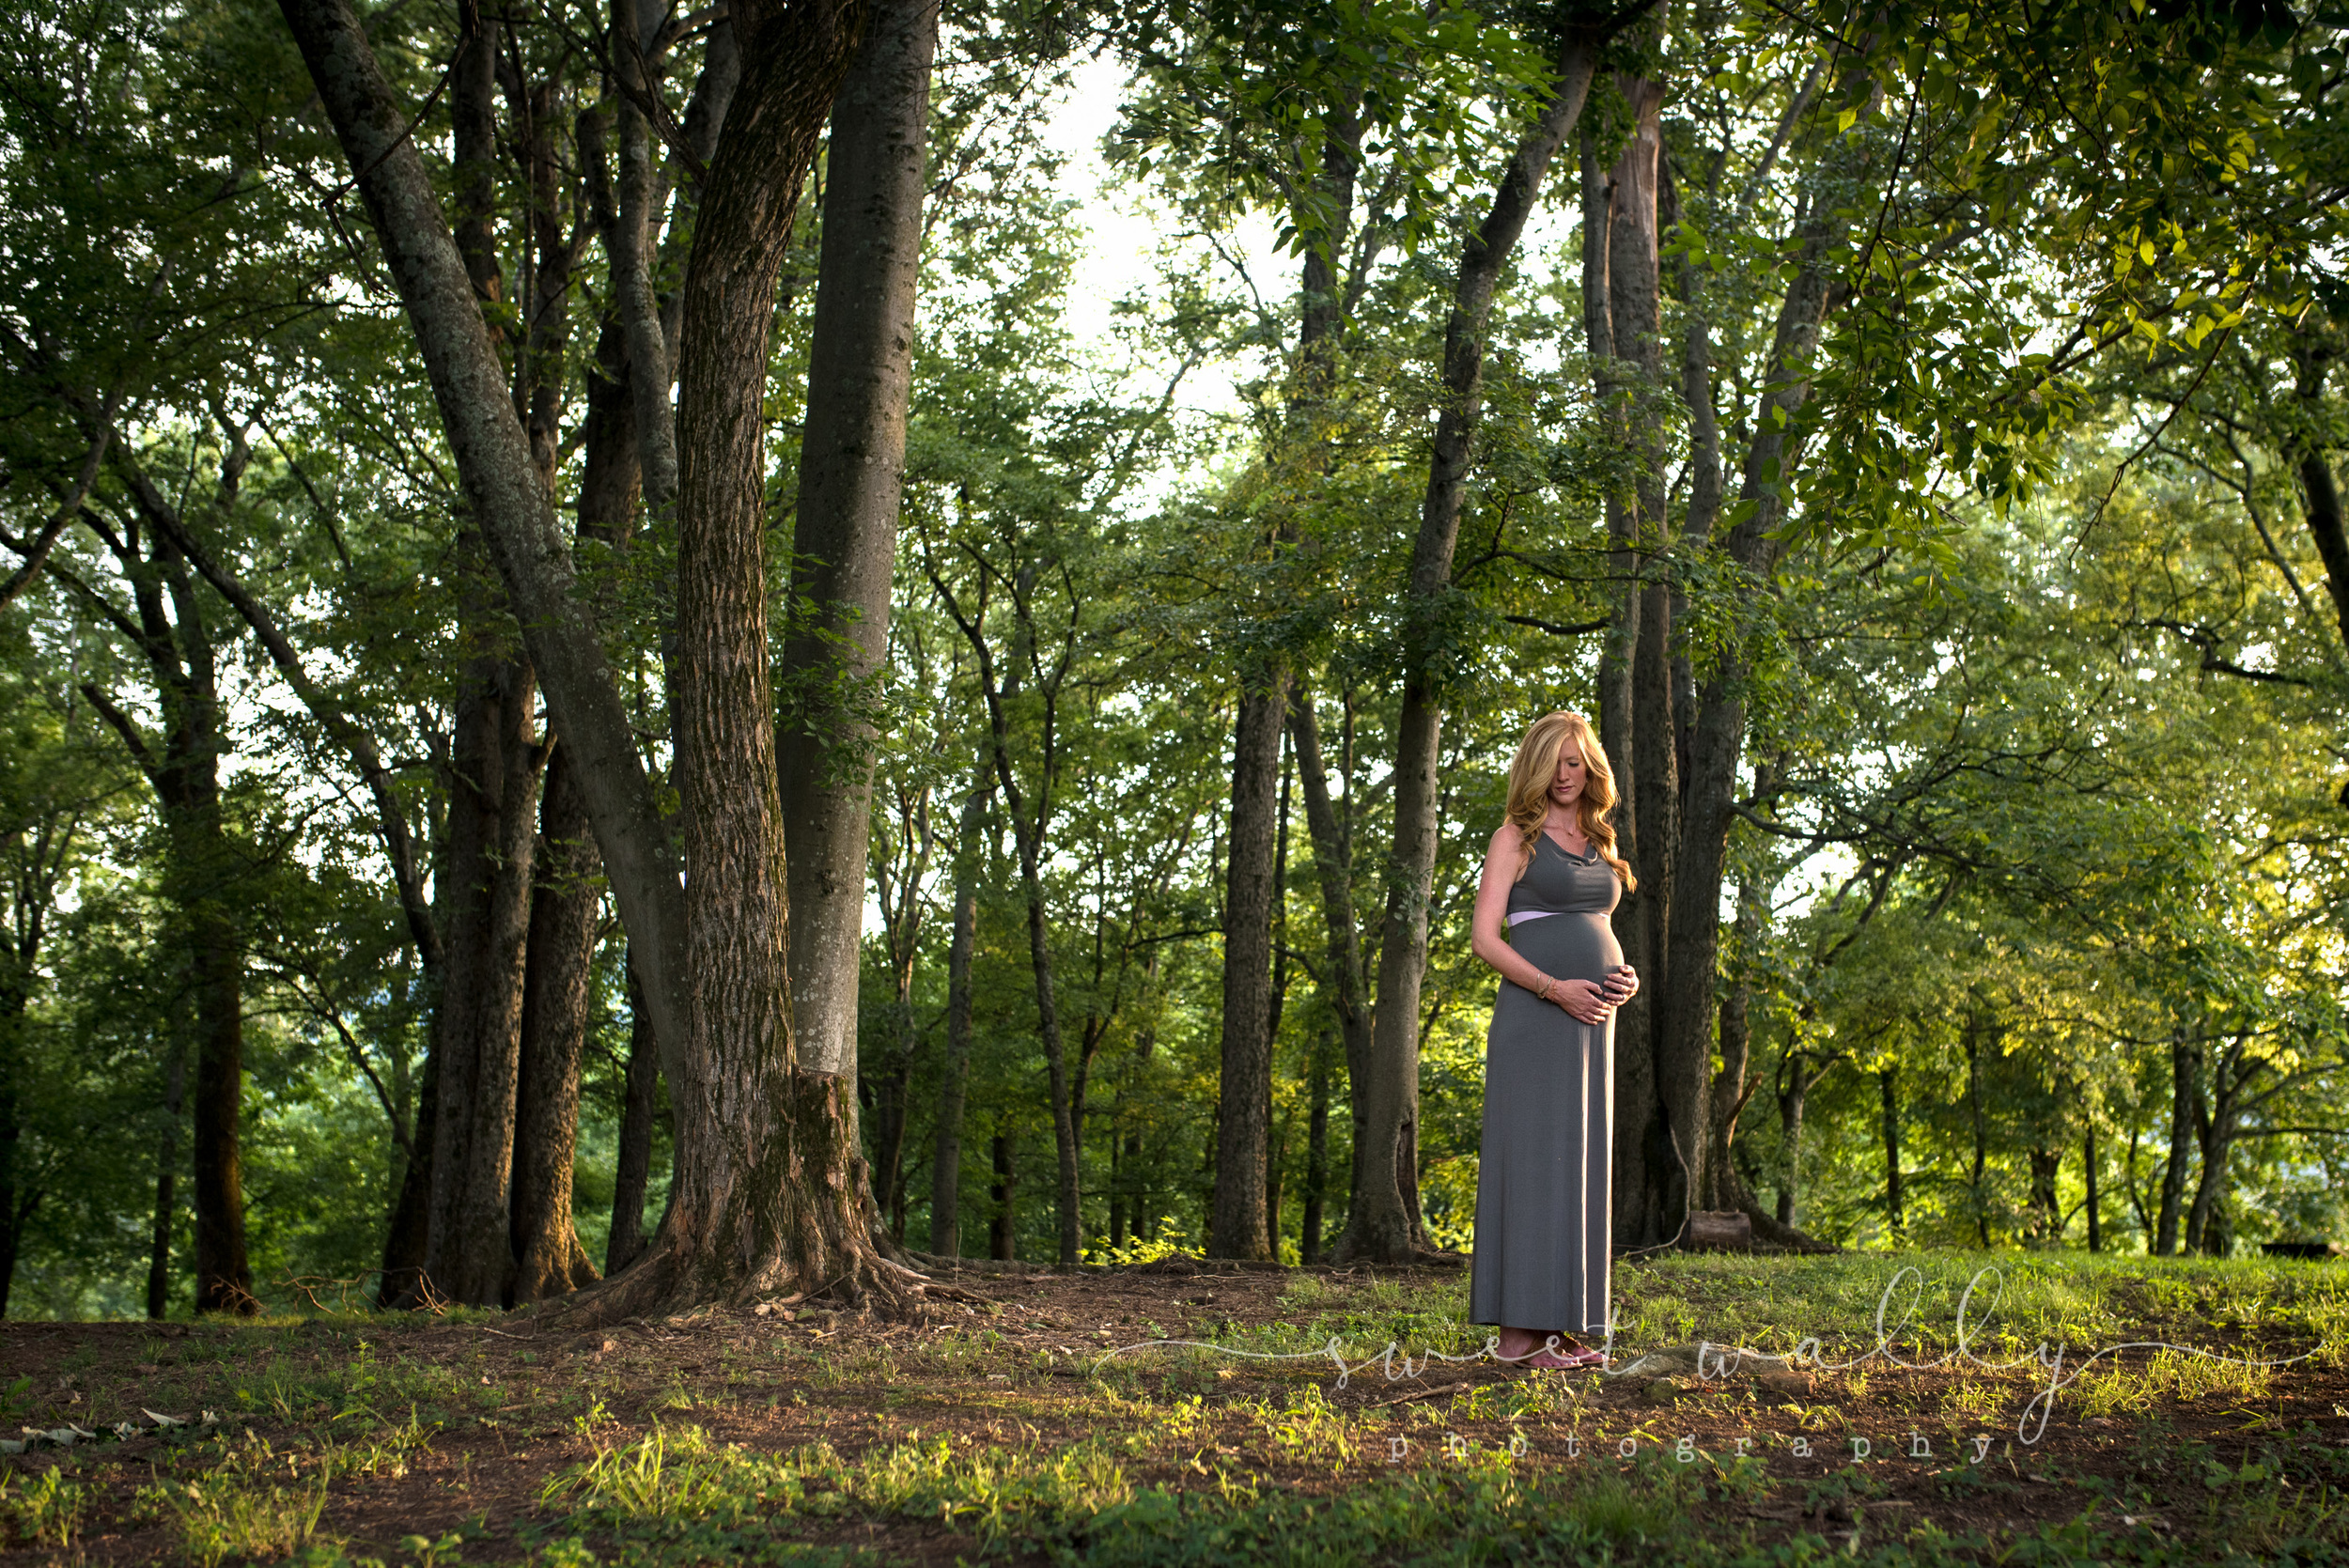 Outdoor Maternity Portrait | Sweet Wally Photography | Nashville Maternity Photographer